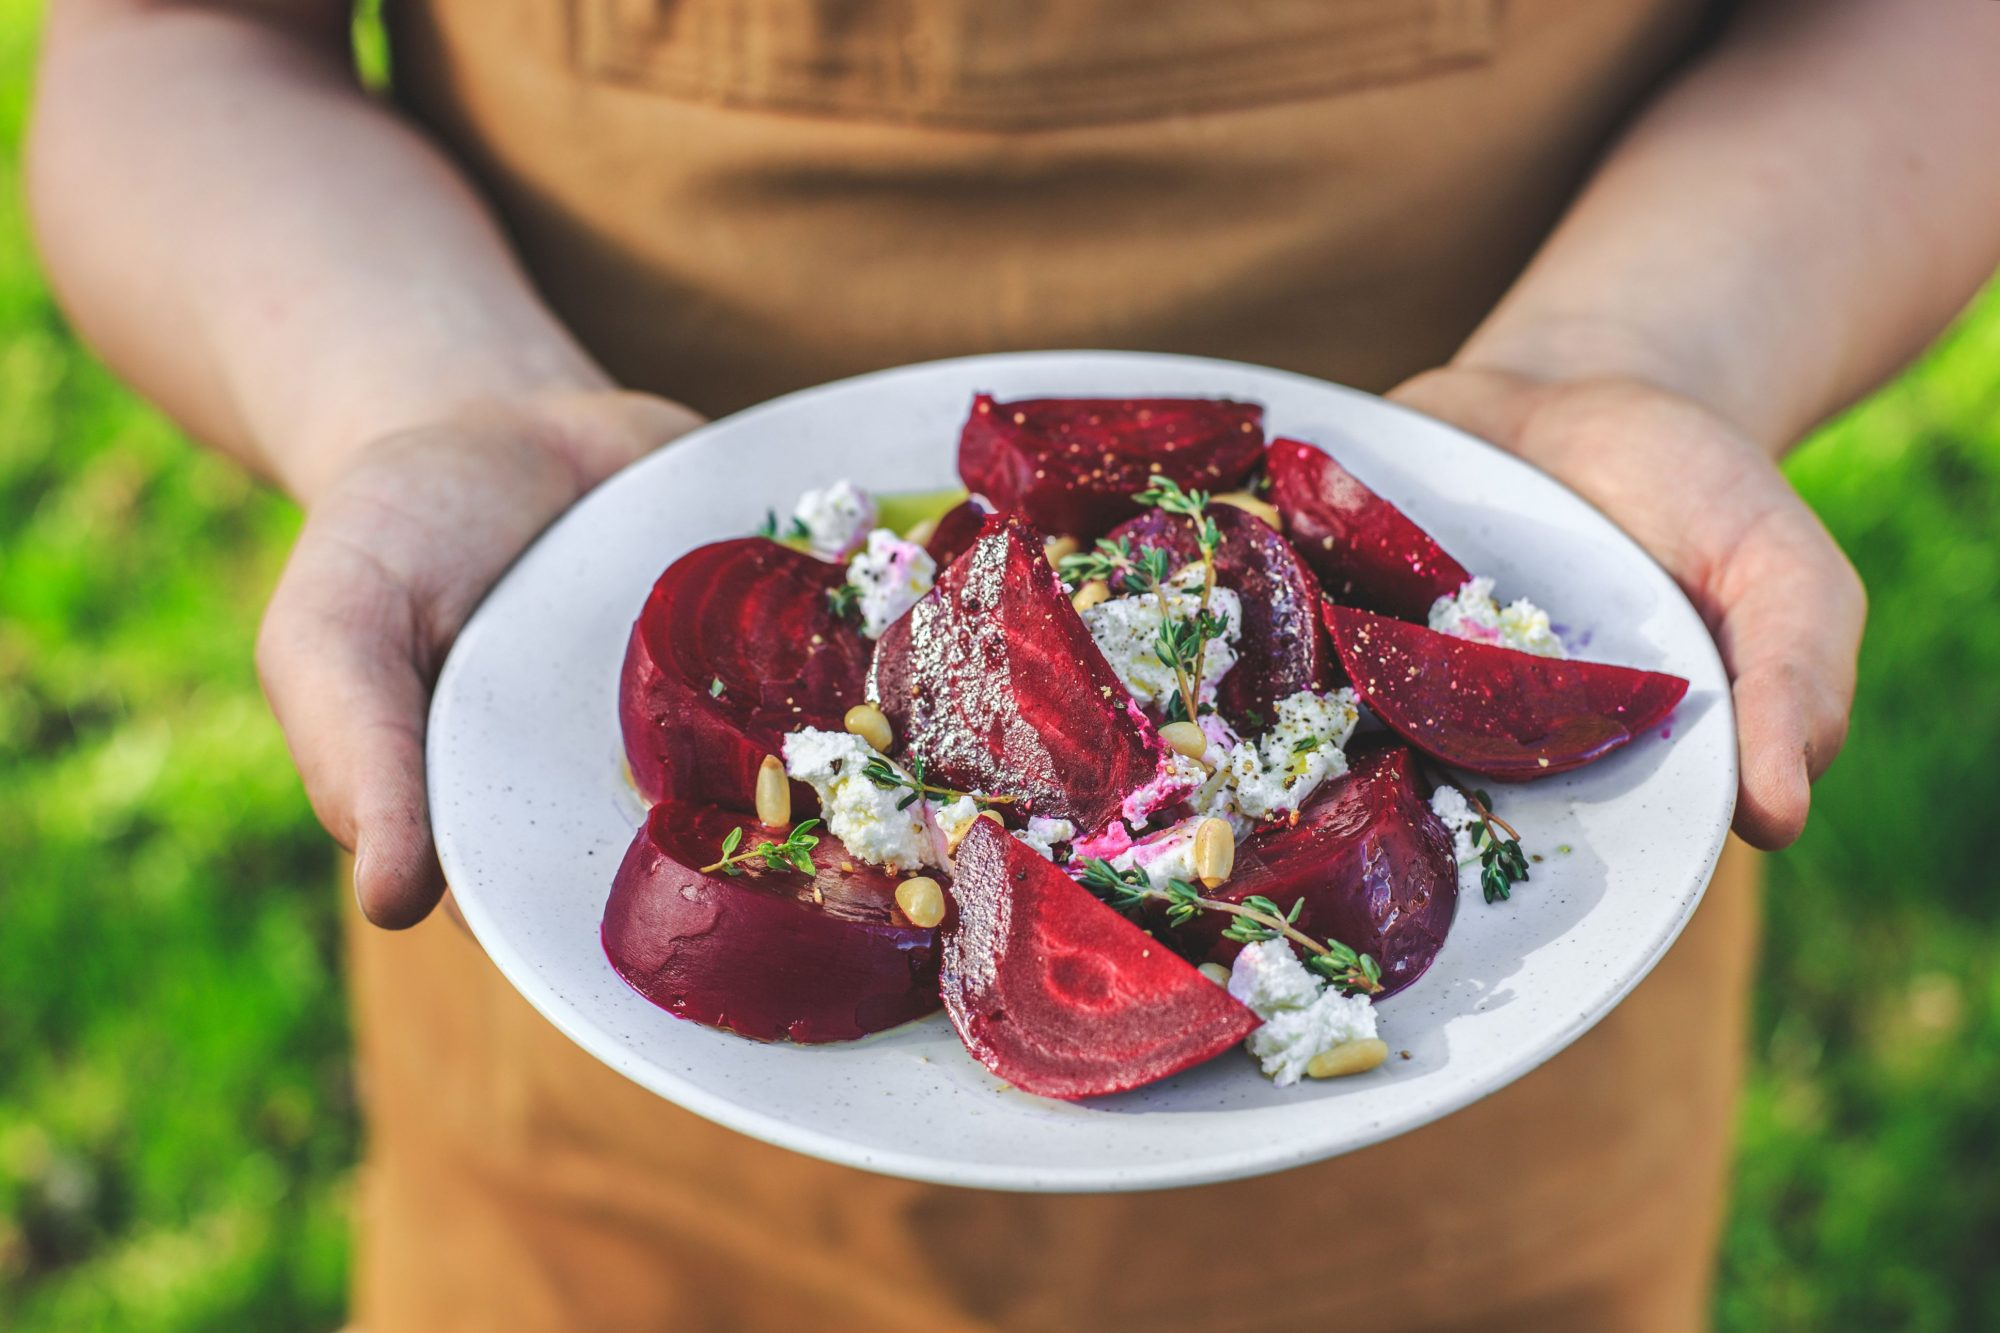 Beet and Goat Cheese Salad Recipe at Zingerman Creamery